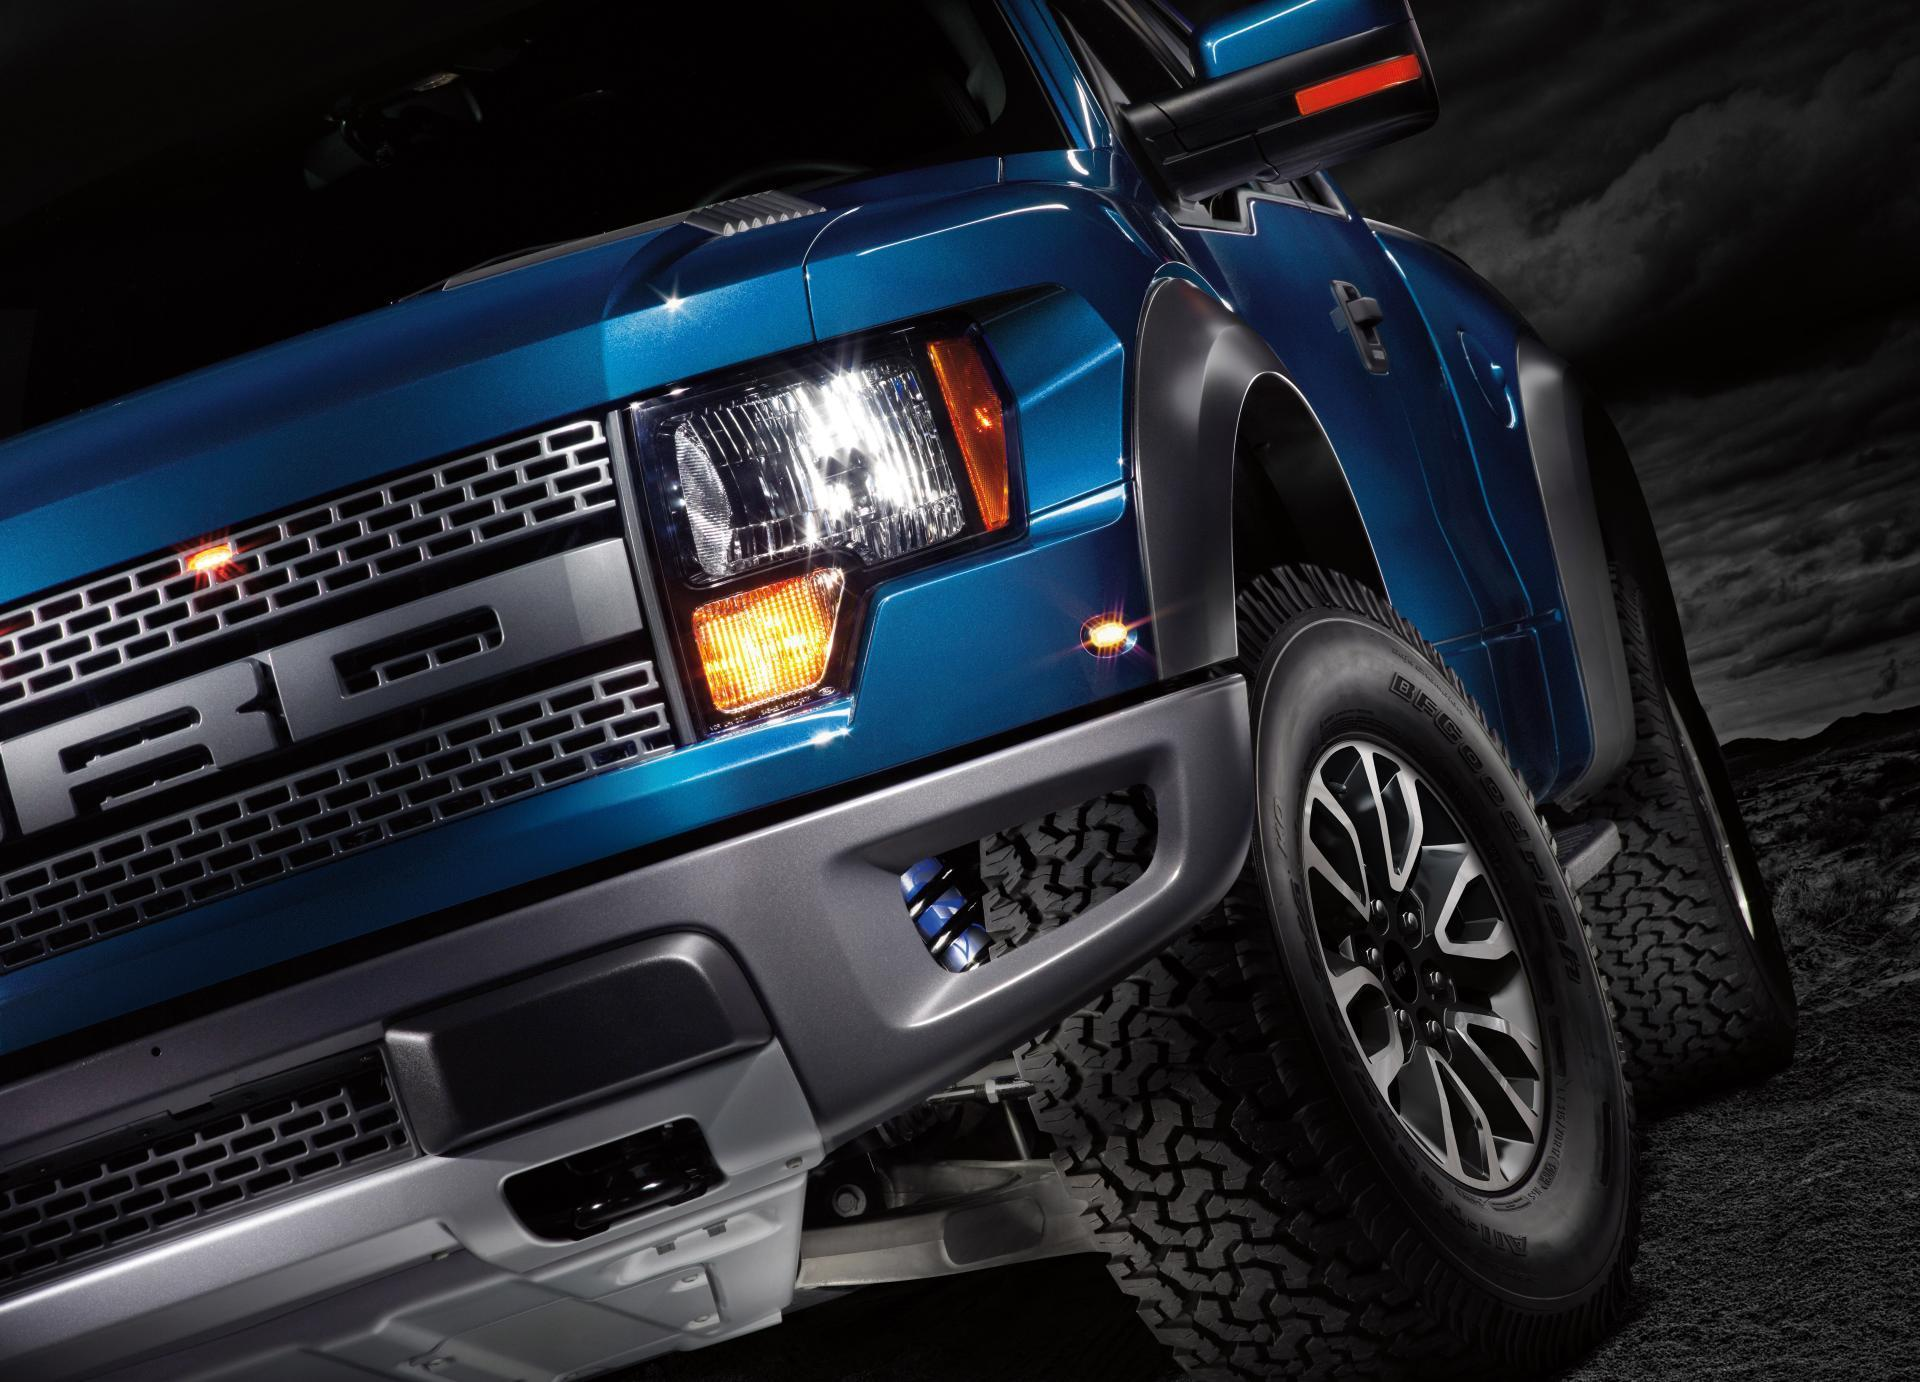 Ford Truck Wallpapers - Top Free Ford